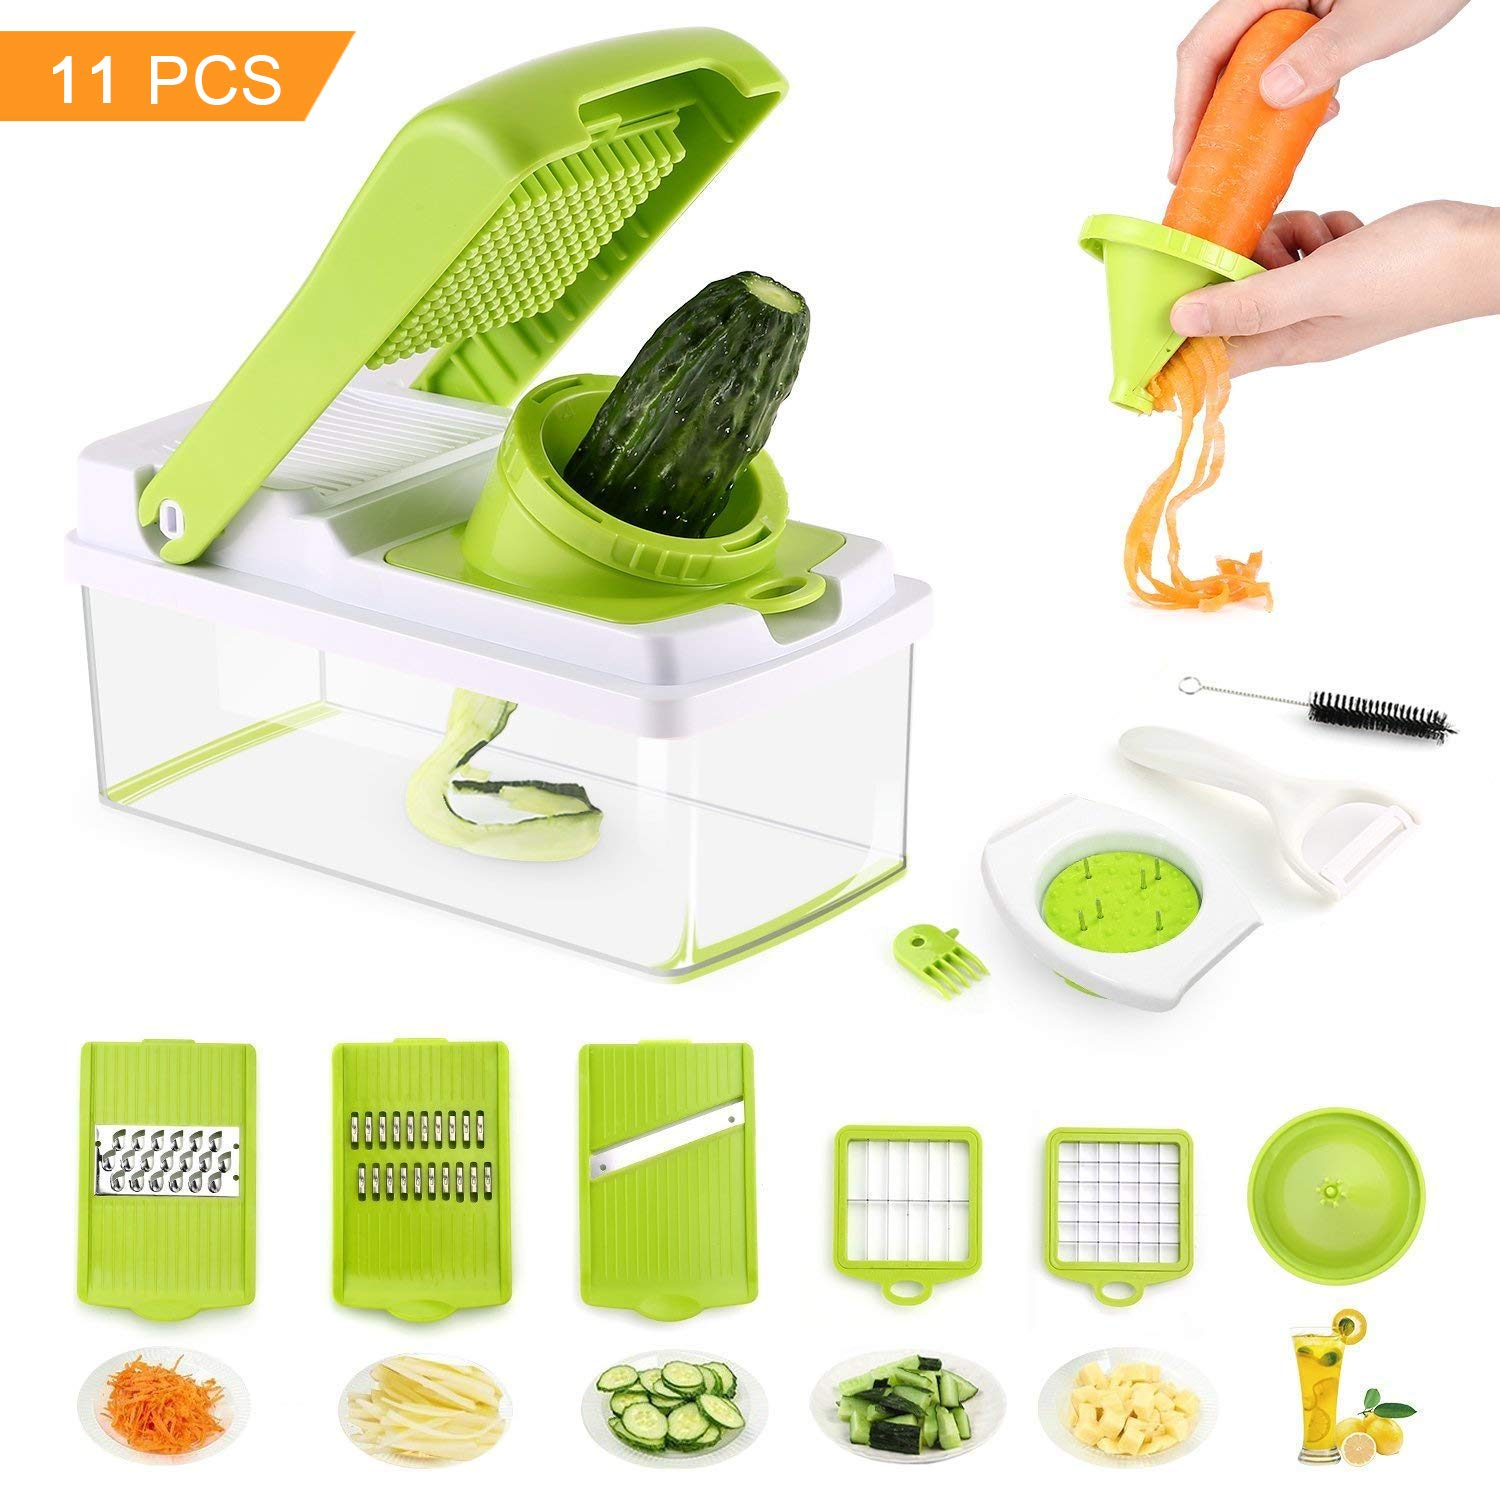 Mandoline Slicer Include Spiralizer Vegetable Slicer Cutter Dicer Julienne Peeler Cleaning Tool Duty Multi Vegetable-Fruit-Cheese-Onion Chopper-Lemon Squeezer-Food Choppers and Dicers Preup